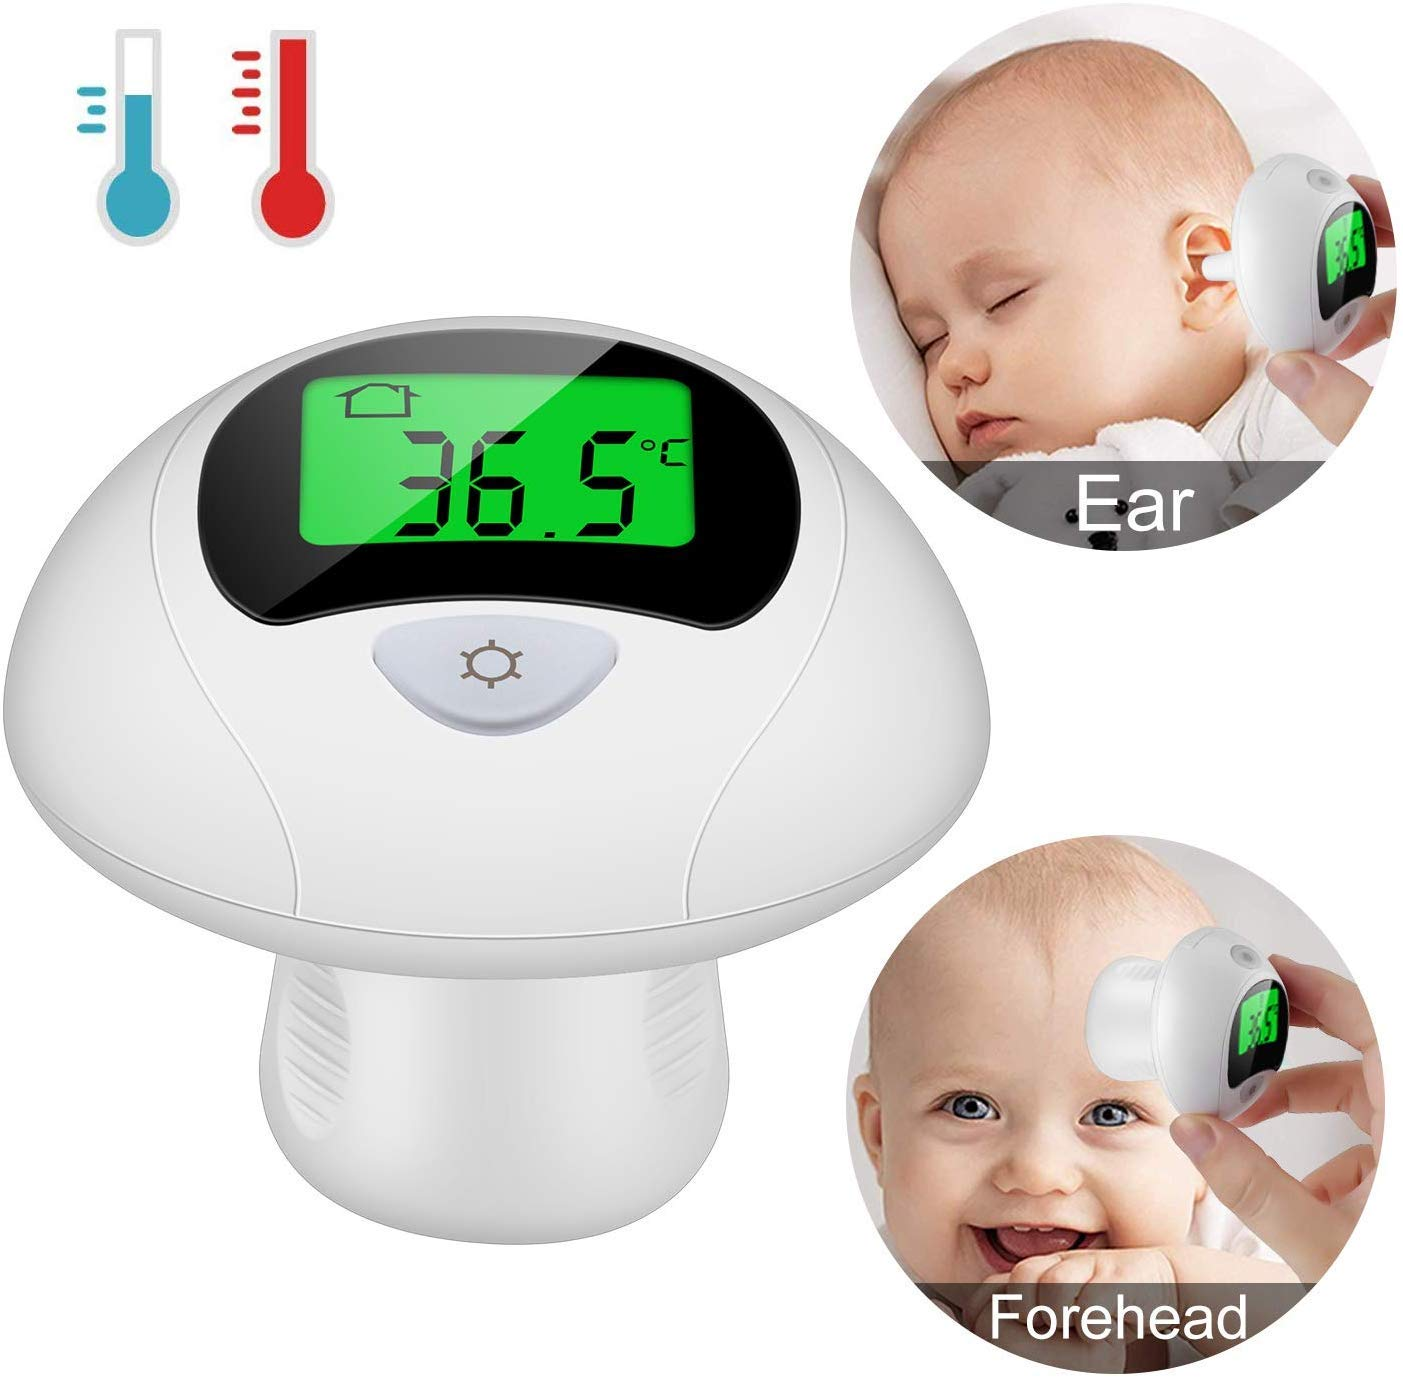 Viedouce Baby Thermometer Ear Forehead Thermometers for Fever Kids and Adults, 4-in-1 Digital Thermometer, Instant Read, F Convertible, Mute Function